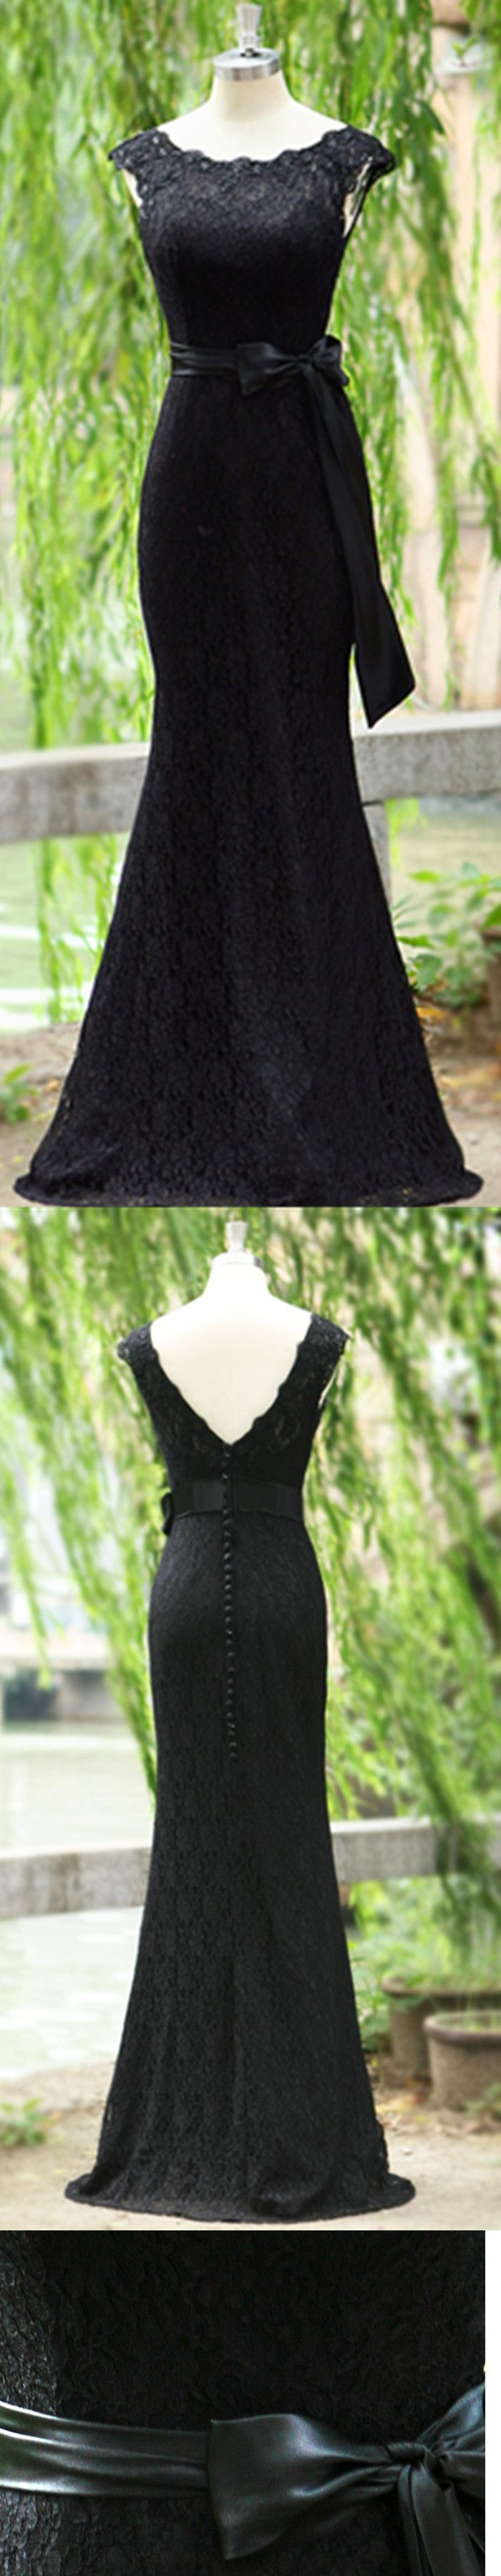 Black Lace Prom Dresses Exquisite Mermaid Prom Dresses,Trumpet Scoop Neck Ribbon Backless Prom Dress,Long Evening Prom Gowns,Formal Woman Dress,Custom Size Evening Dresses,Cheap Prom Dresses,Black Mother of the bridesmaid Dresses,Mermaid Mother's Dresses